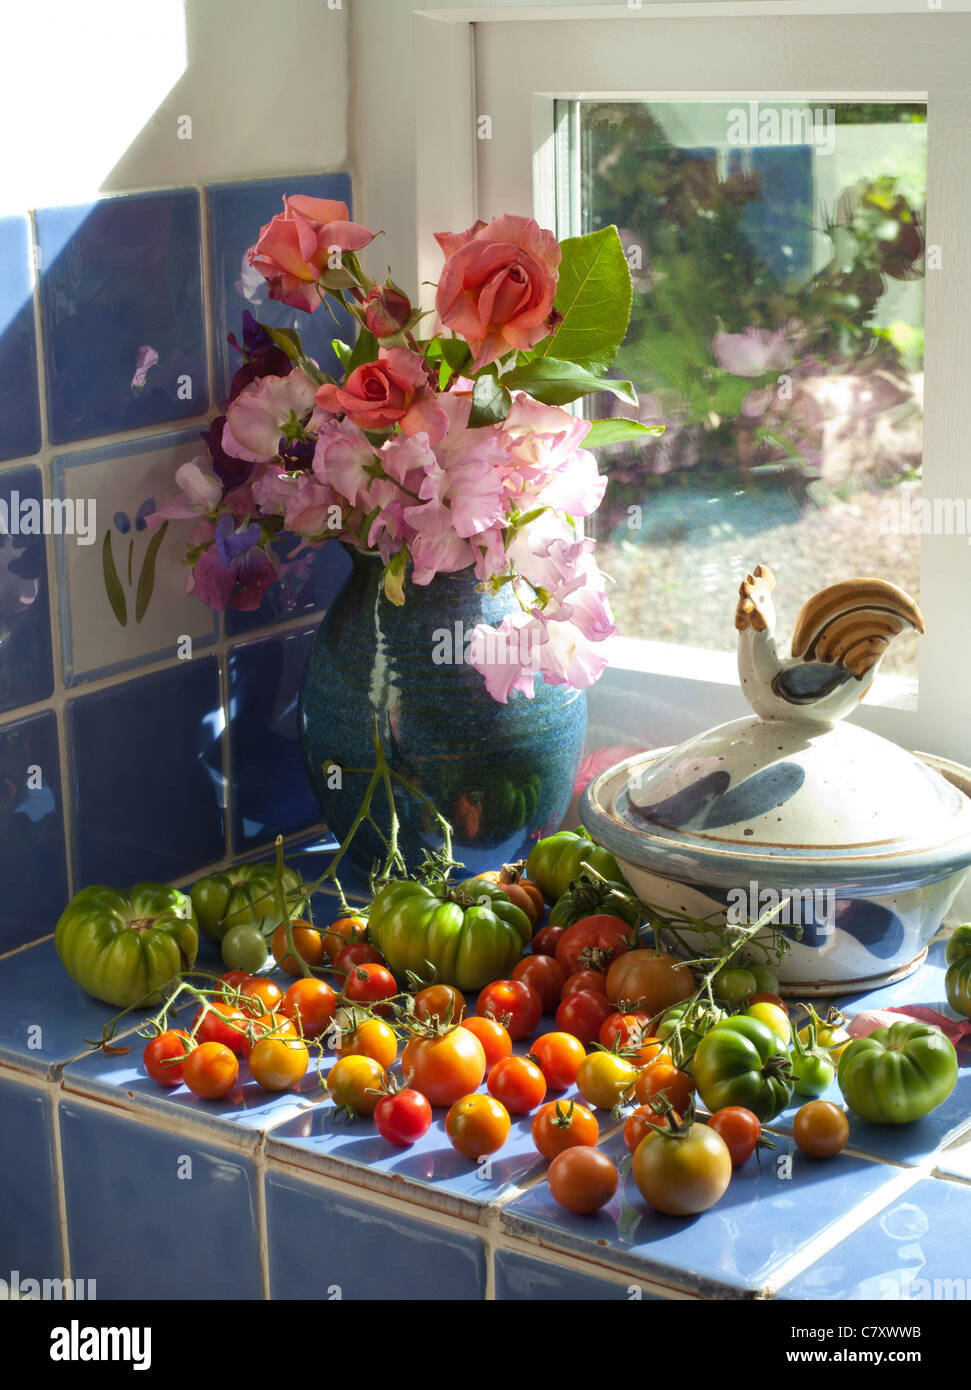 RIPENING TOMATOES AND FLOWERS ON WINDOW SILL IN KITCHEN UK - Stock Image